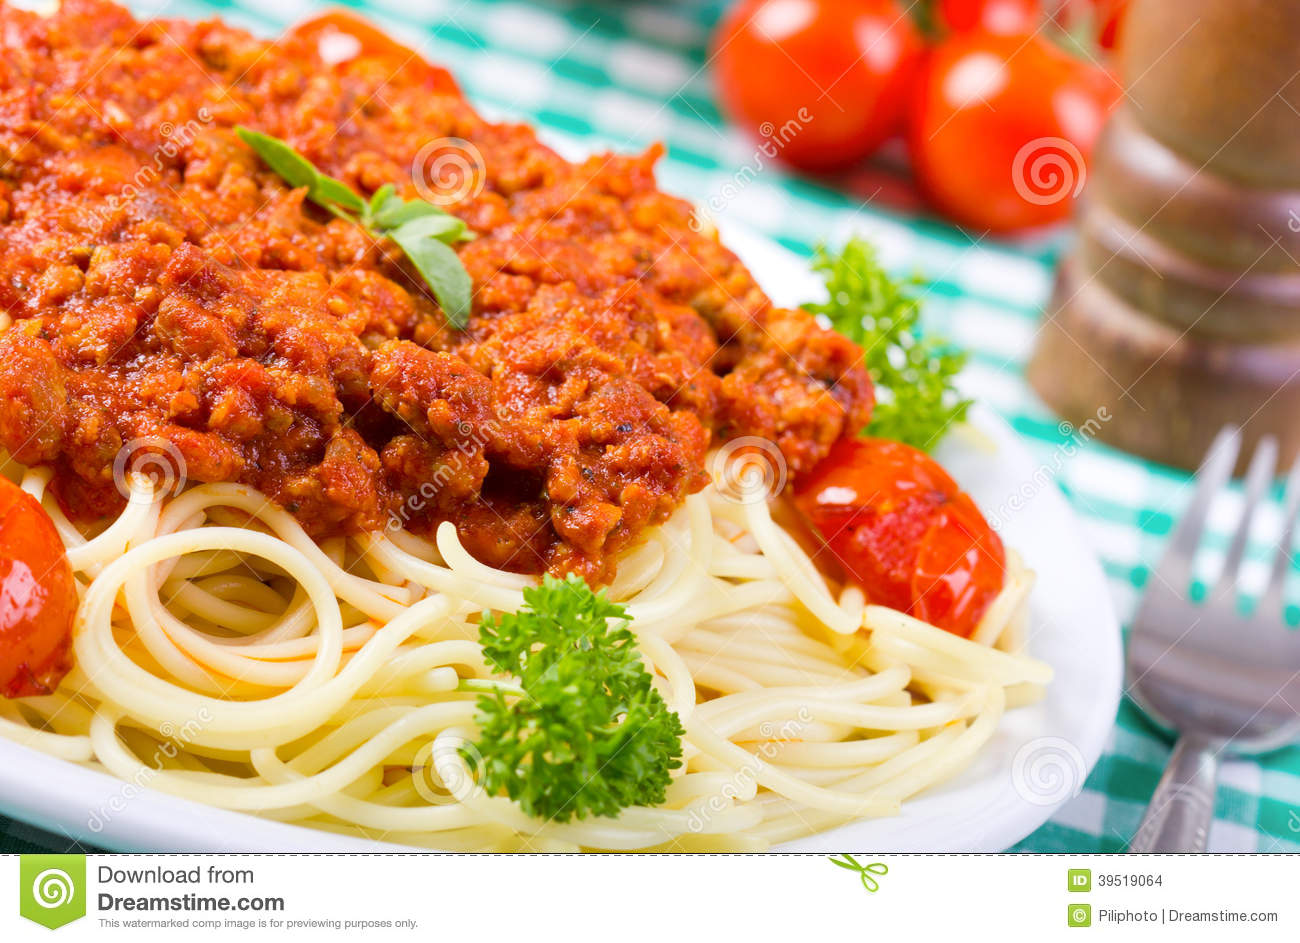 More similar stock images of ` Spaghetti with bolognese sauce `